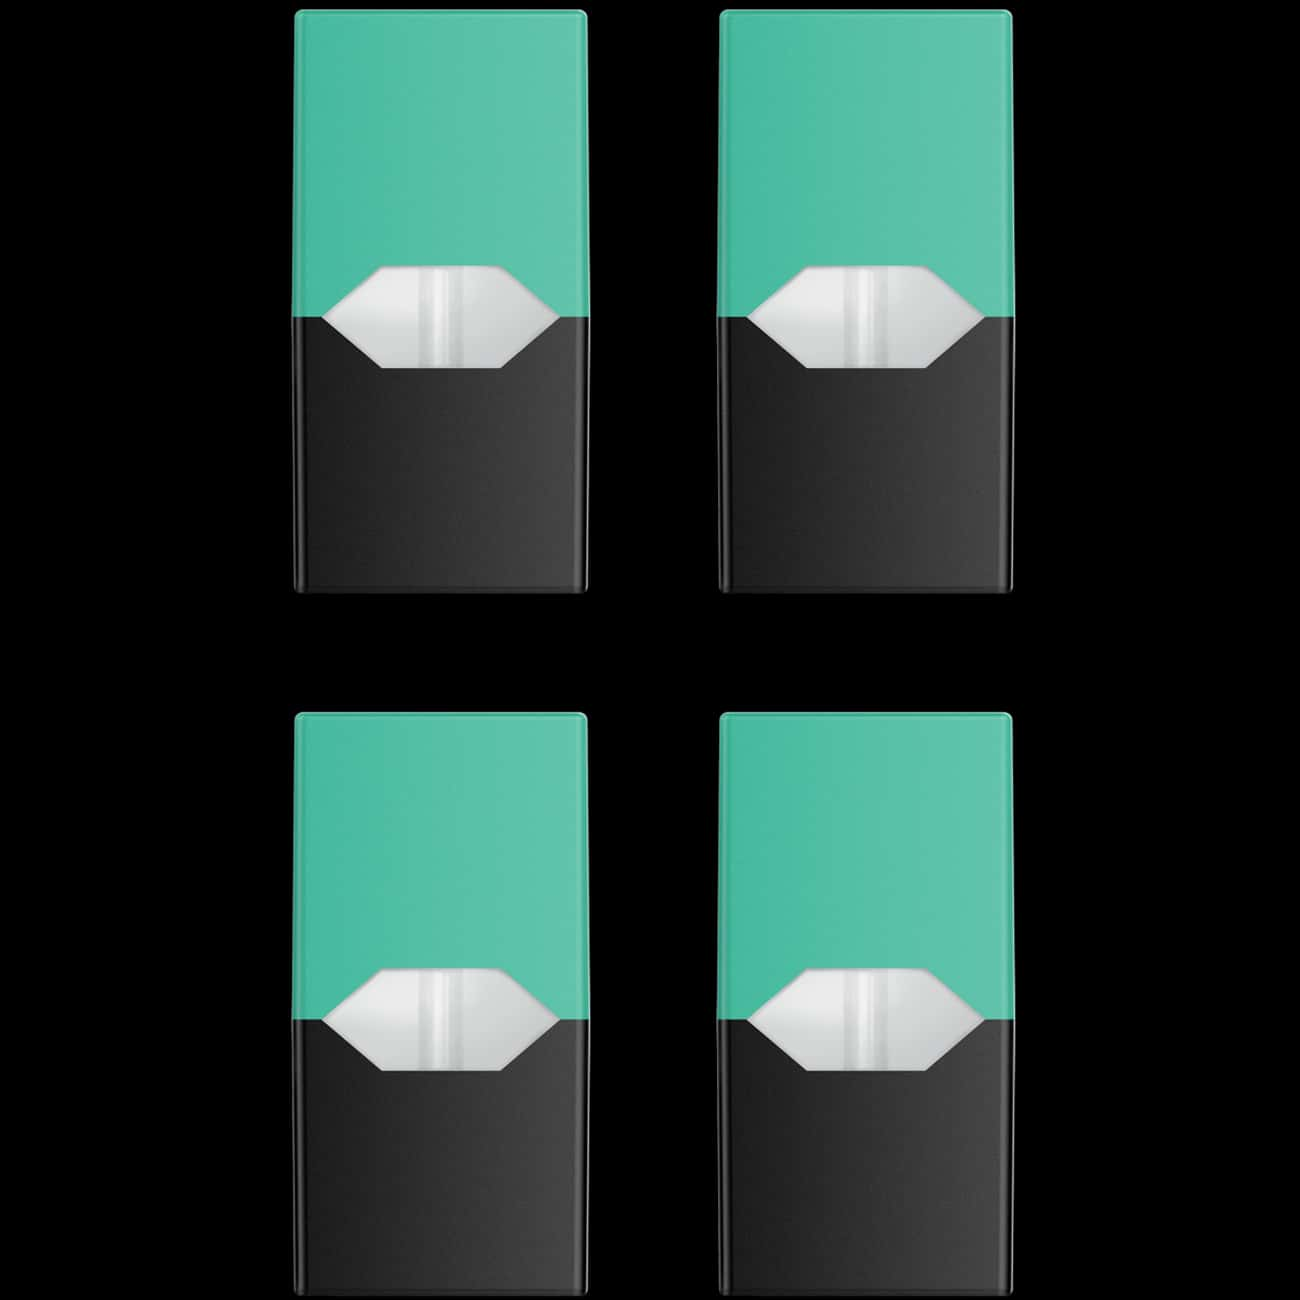 Mint  is listed (or ranked) 1 on the list The Best JUUL Pod Flavors